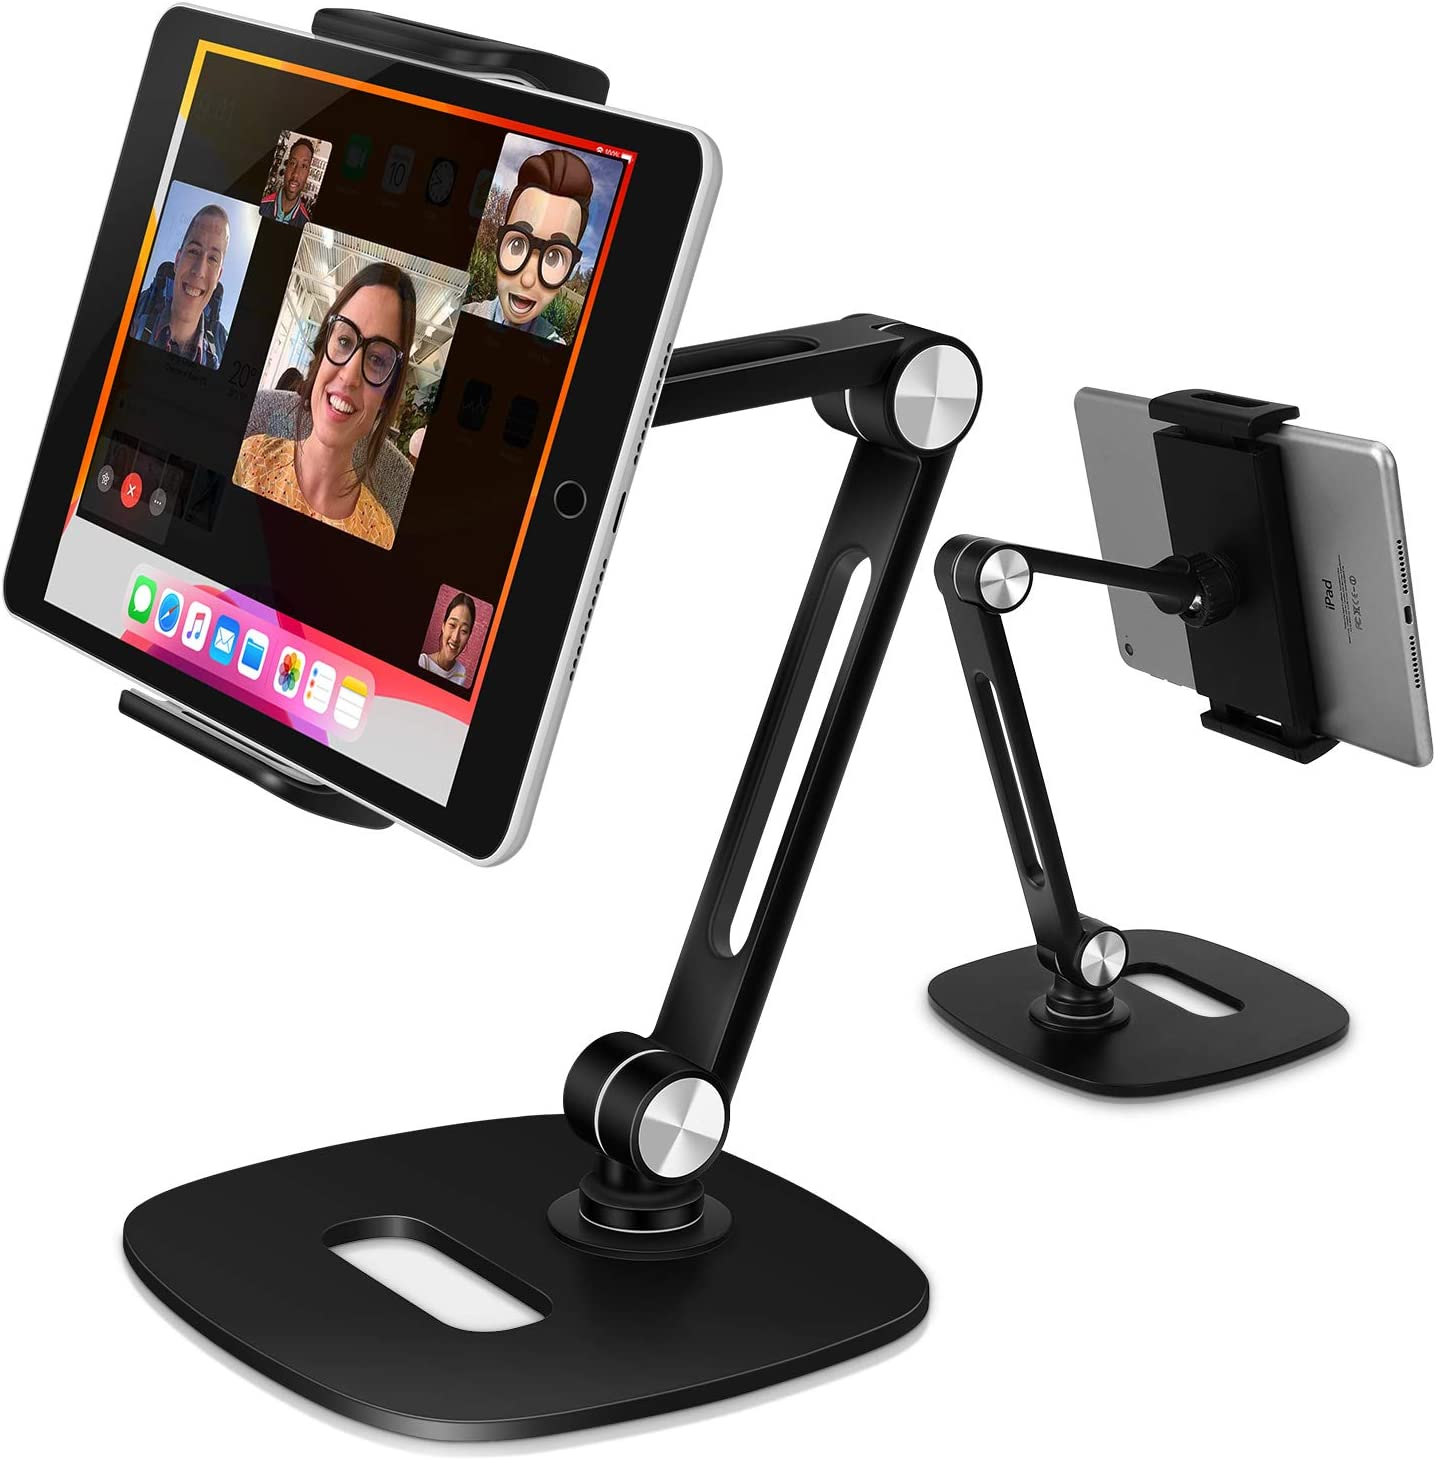 "B-Land Adjustable Tablet Stand, Desktop Tablet Holder Mount Foldable Phone Stand with 360° Swivel Phone Clamp Mount Holder, Compatible with 4-13"" Tablets/Phones,Nintendo Switch, Kindle"